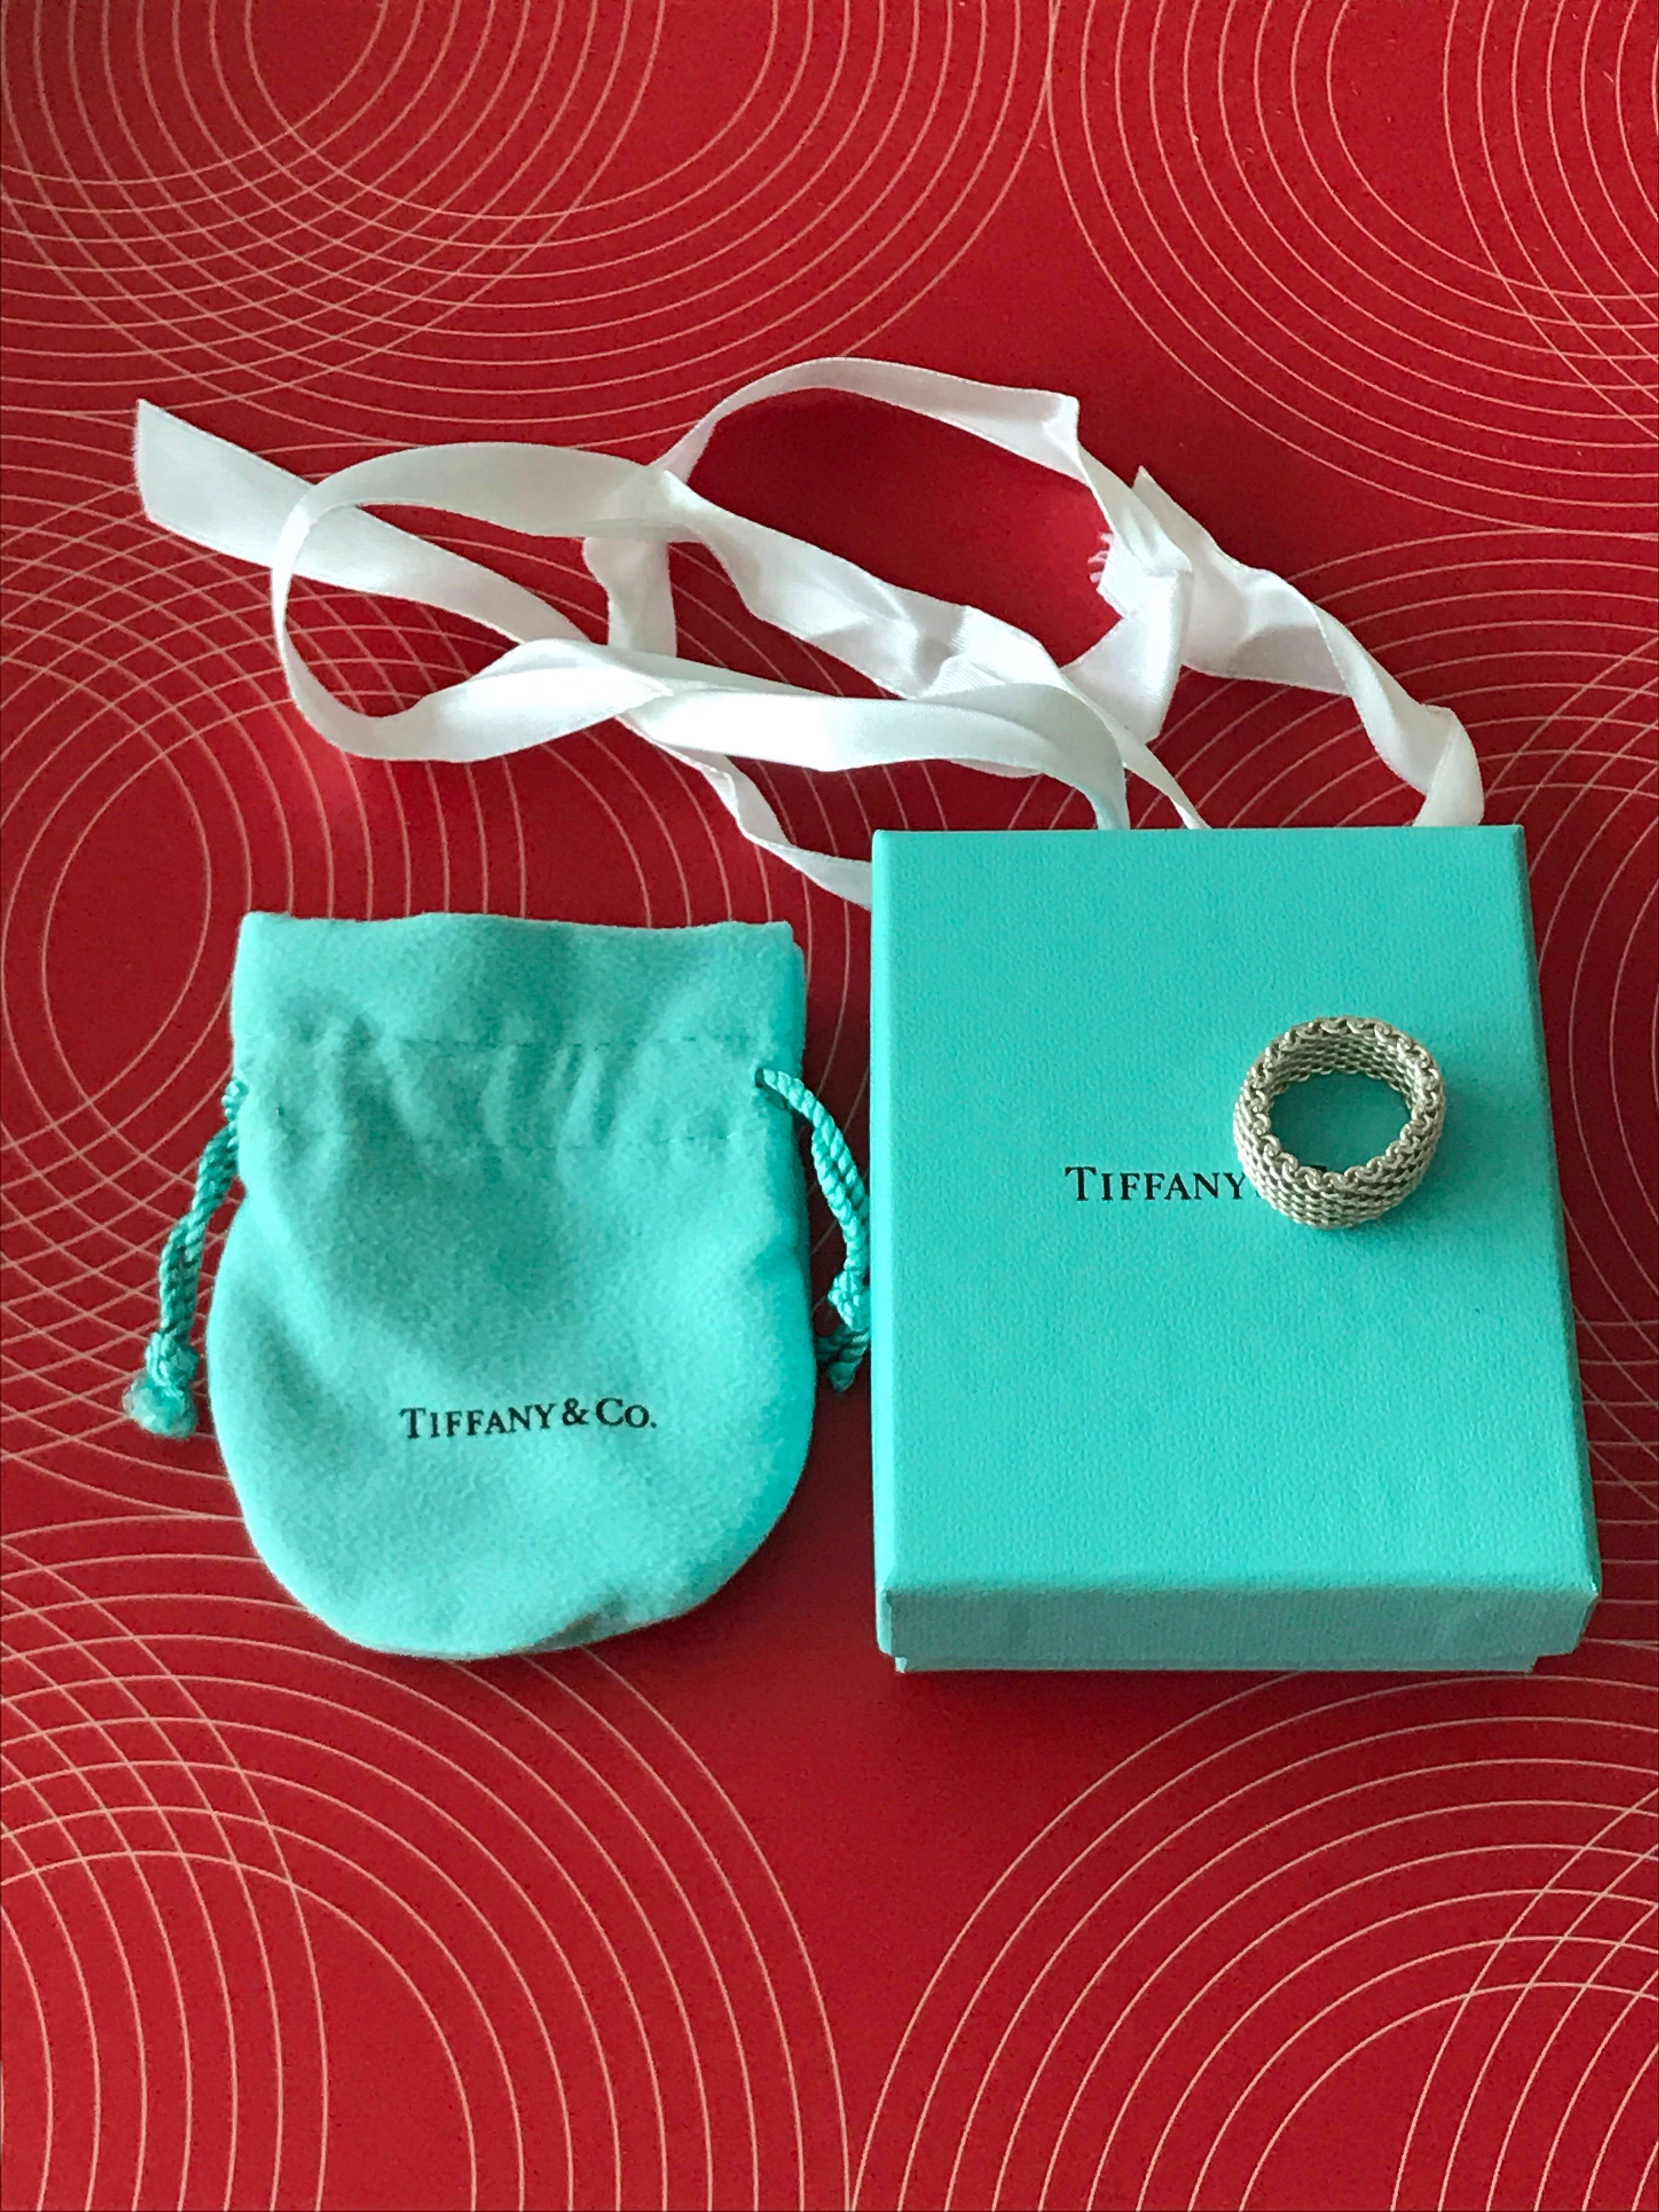 080a10889997c Genuine Tiffany & Co 925 Sterling Silver Somerset Mesh Ring Size 7/N54  Unisex